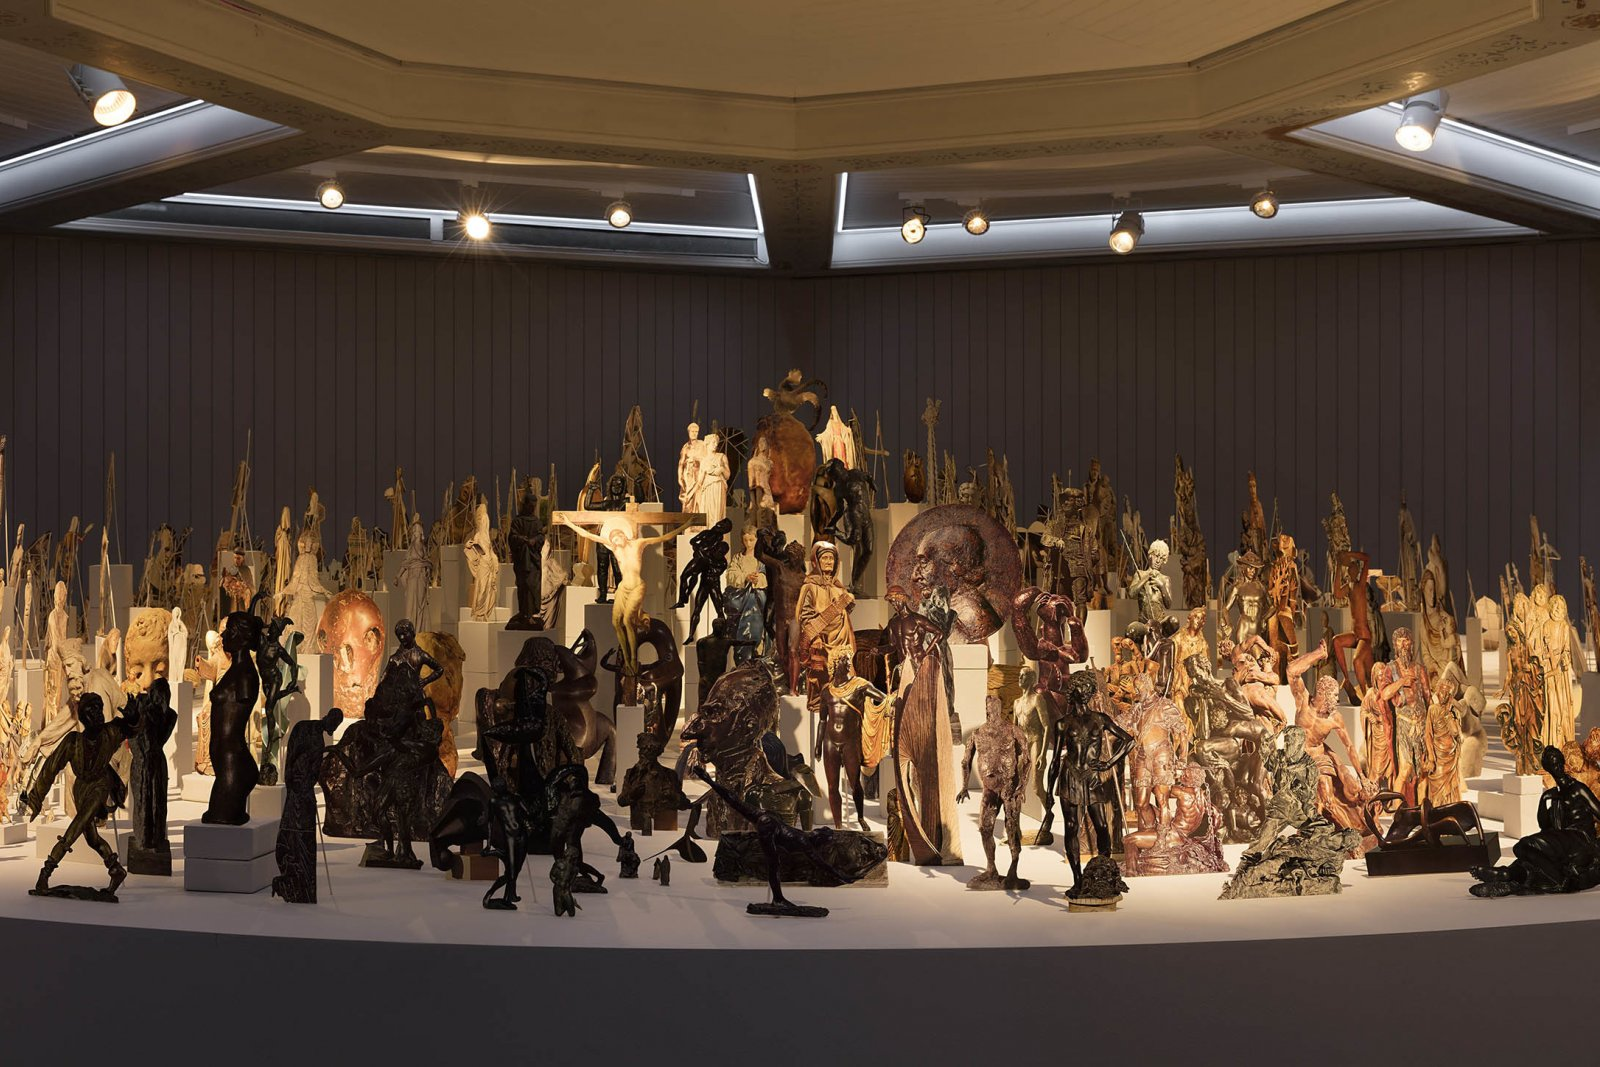 Geoffrey Farmer,Boneyard(detail), 2013, paper cutouts, wood, glue, dimensions variable. Installation view,The Care With Which The Rain Is Wrong, Schinkel Pavillon, Berlin, Germany,2017